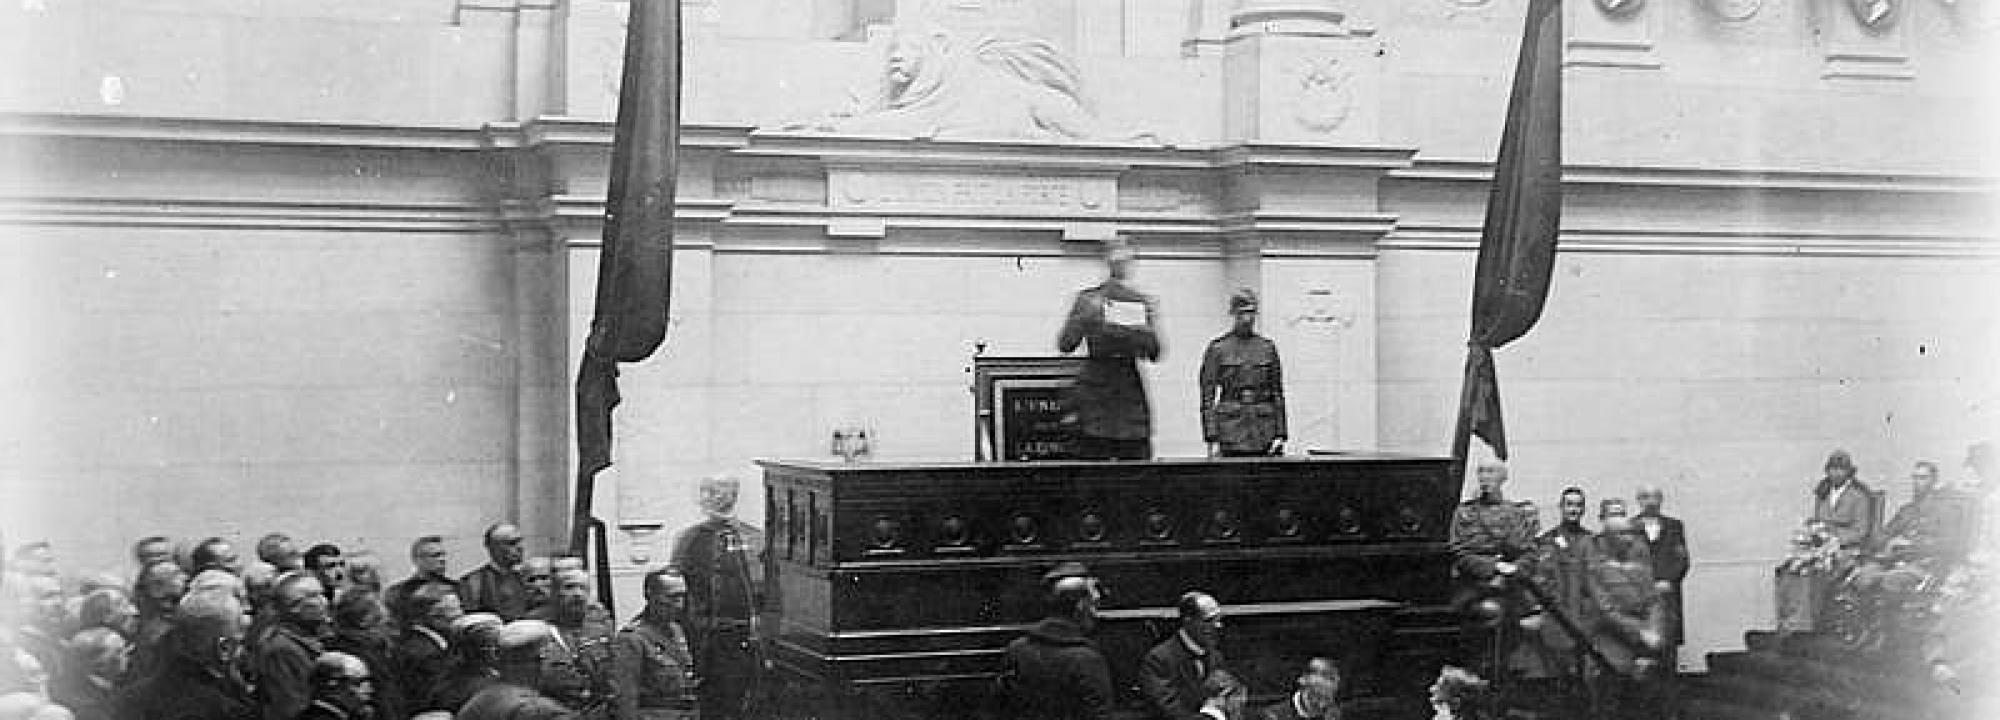 King Albert of the Belgians reopening the Belgian Parliament after the First World War, Brussels, 22 November 1918.